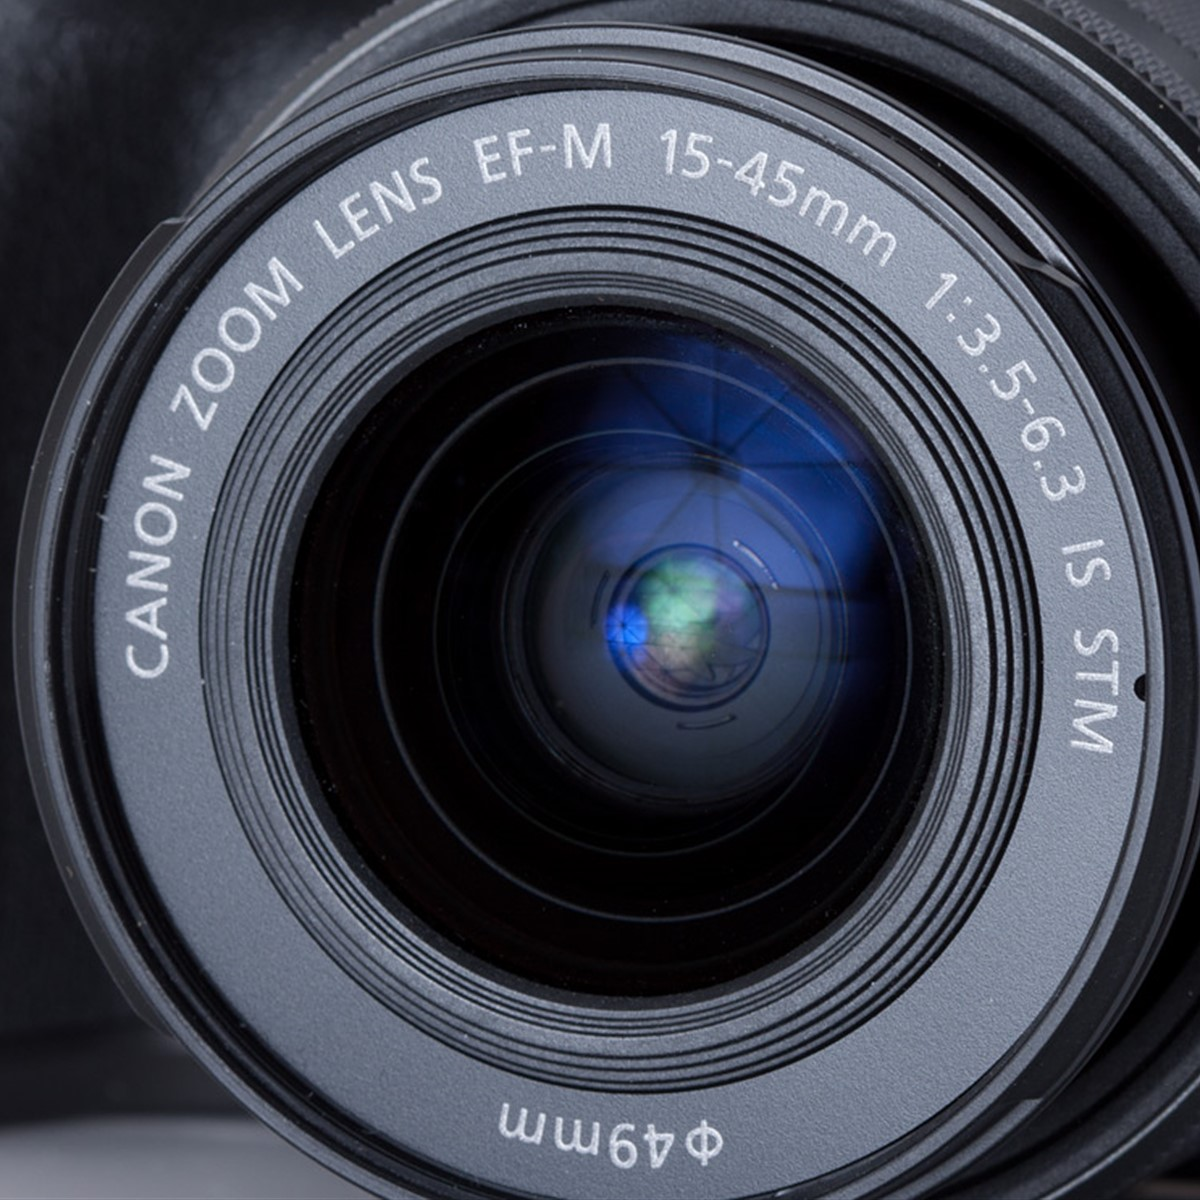 Buying A Second Lens What Lens Should I Buy Next Digital Photography Review